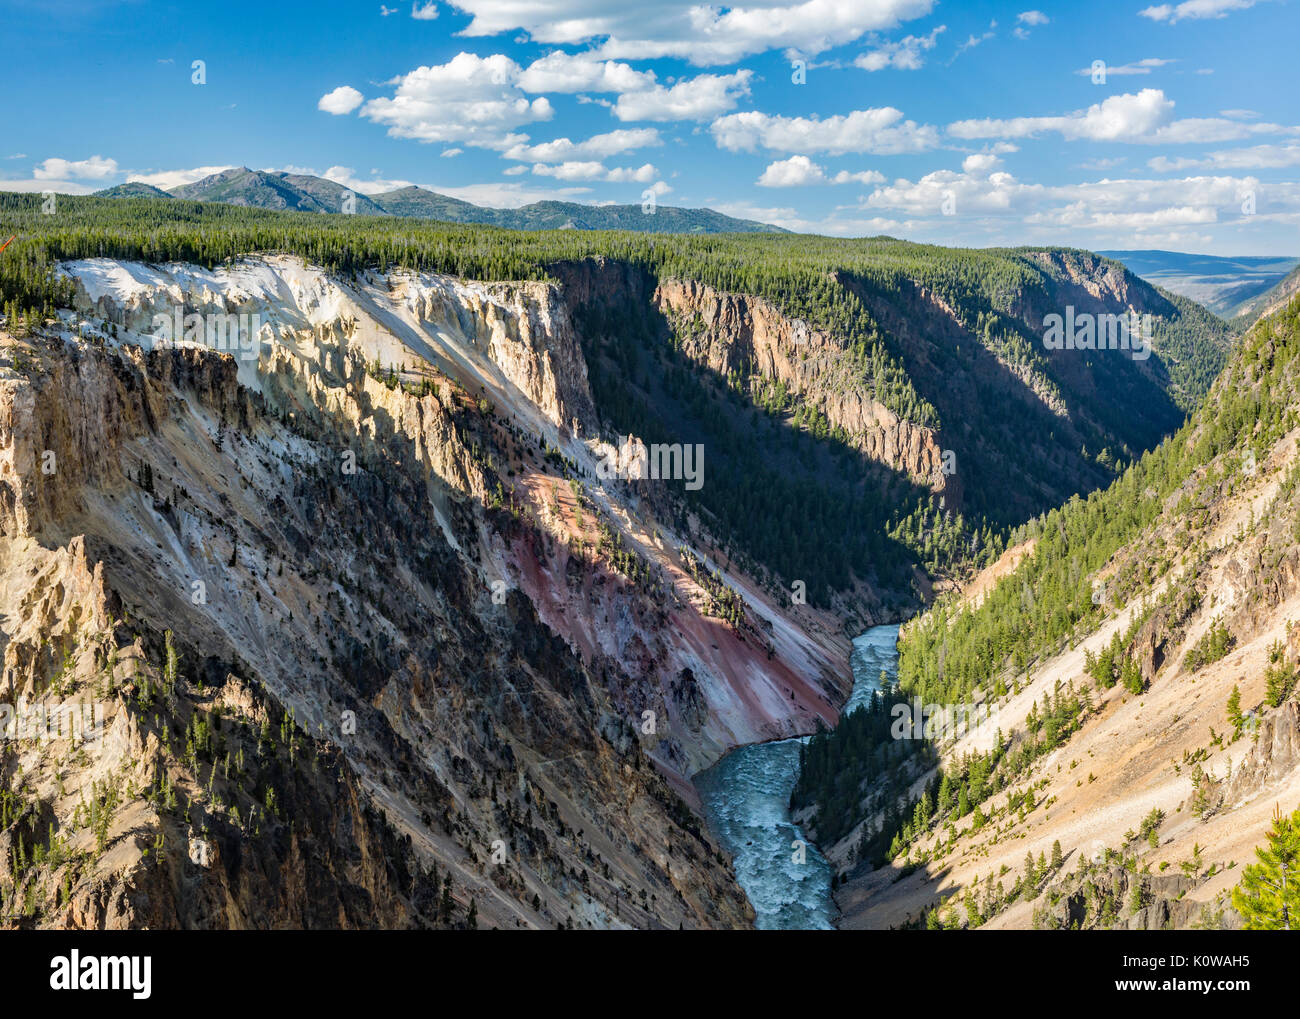 Forested walls of the lower part of the Grand Canyon of the Yellowstone from the South Rim in Yellowstone National Park, Wyoming - Stock Image